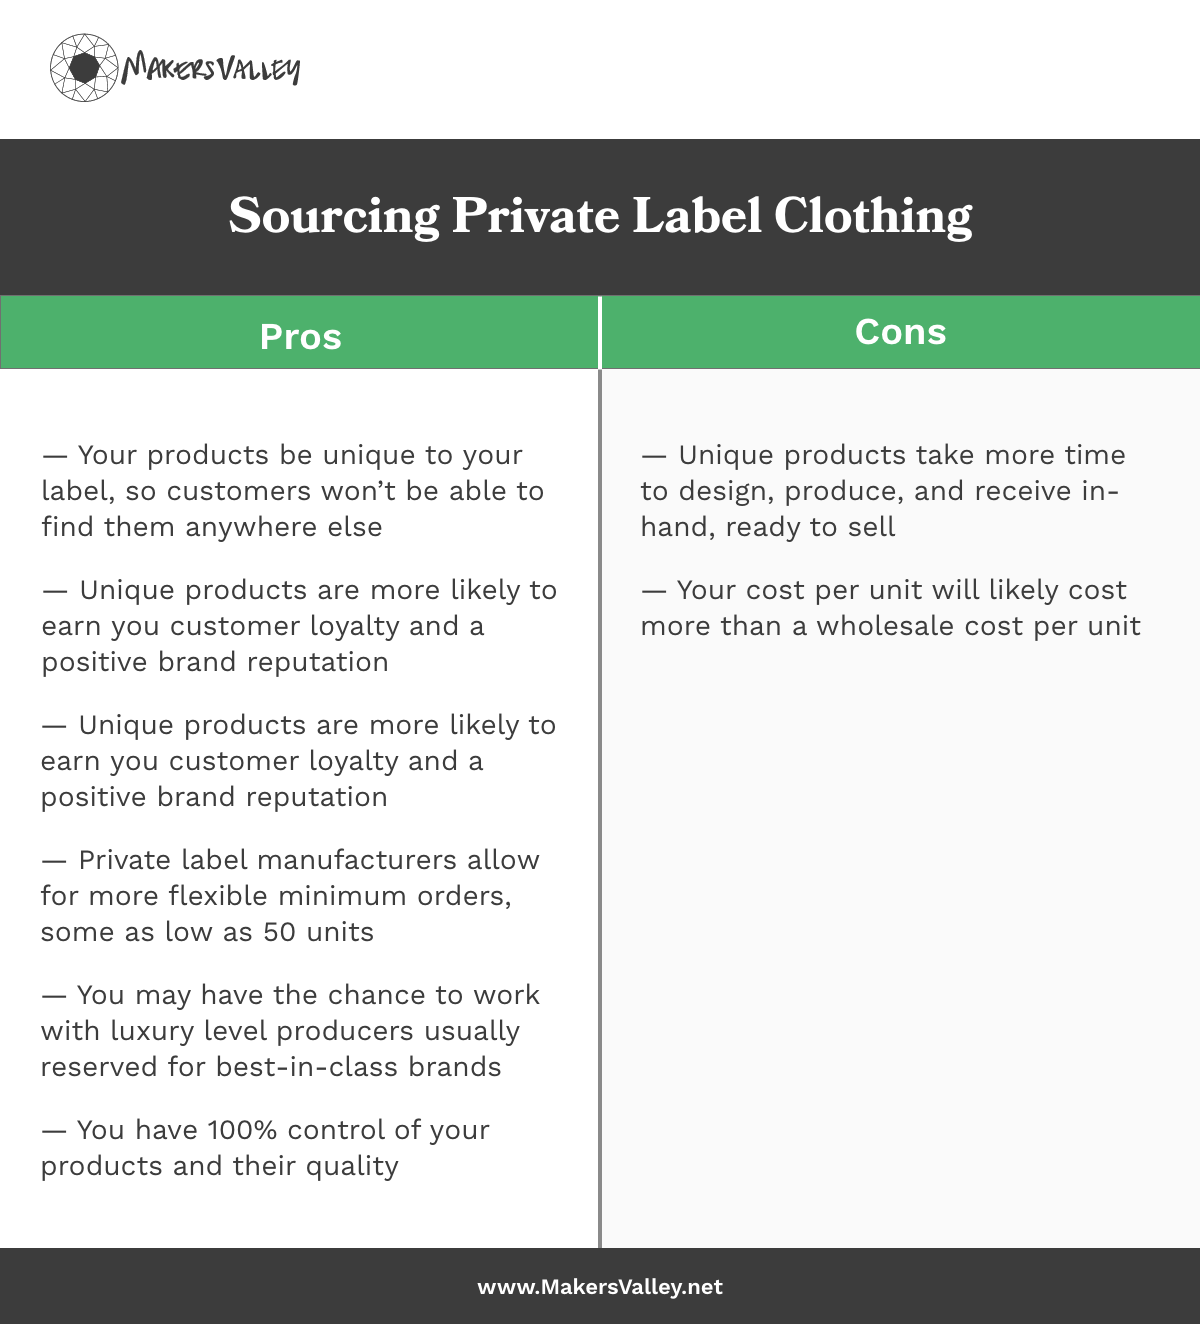 Pros and Cons - Sourcing Clothing with Private Label